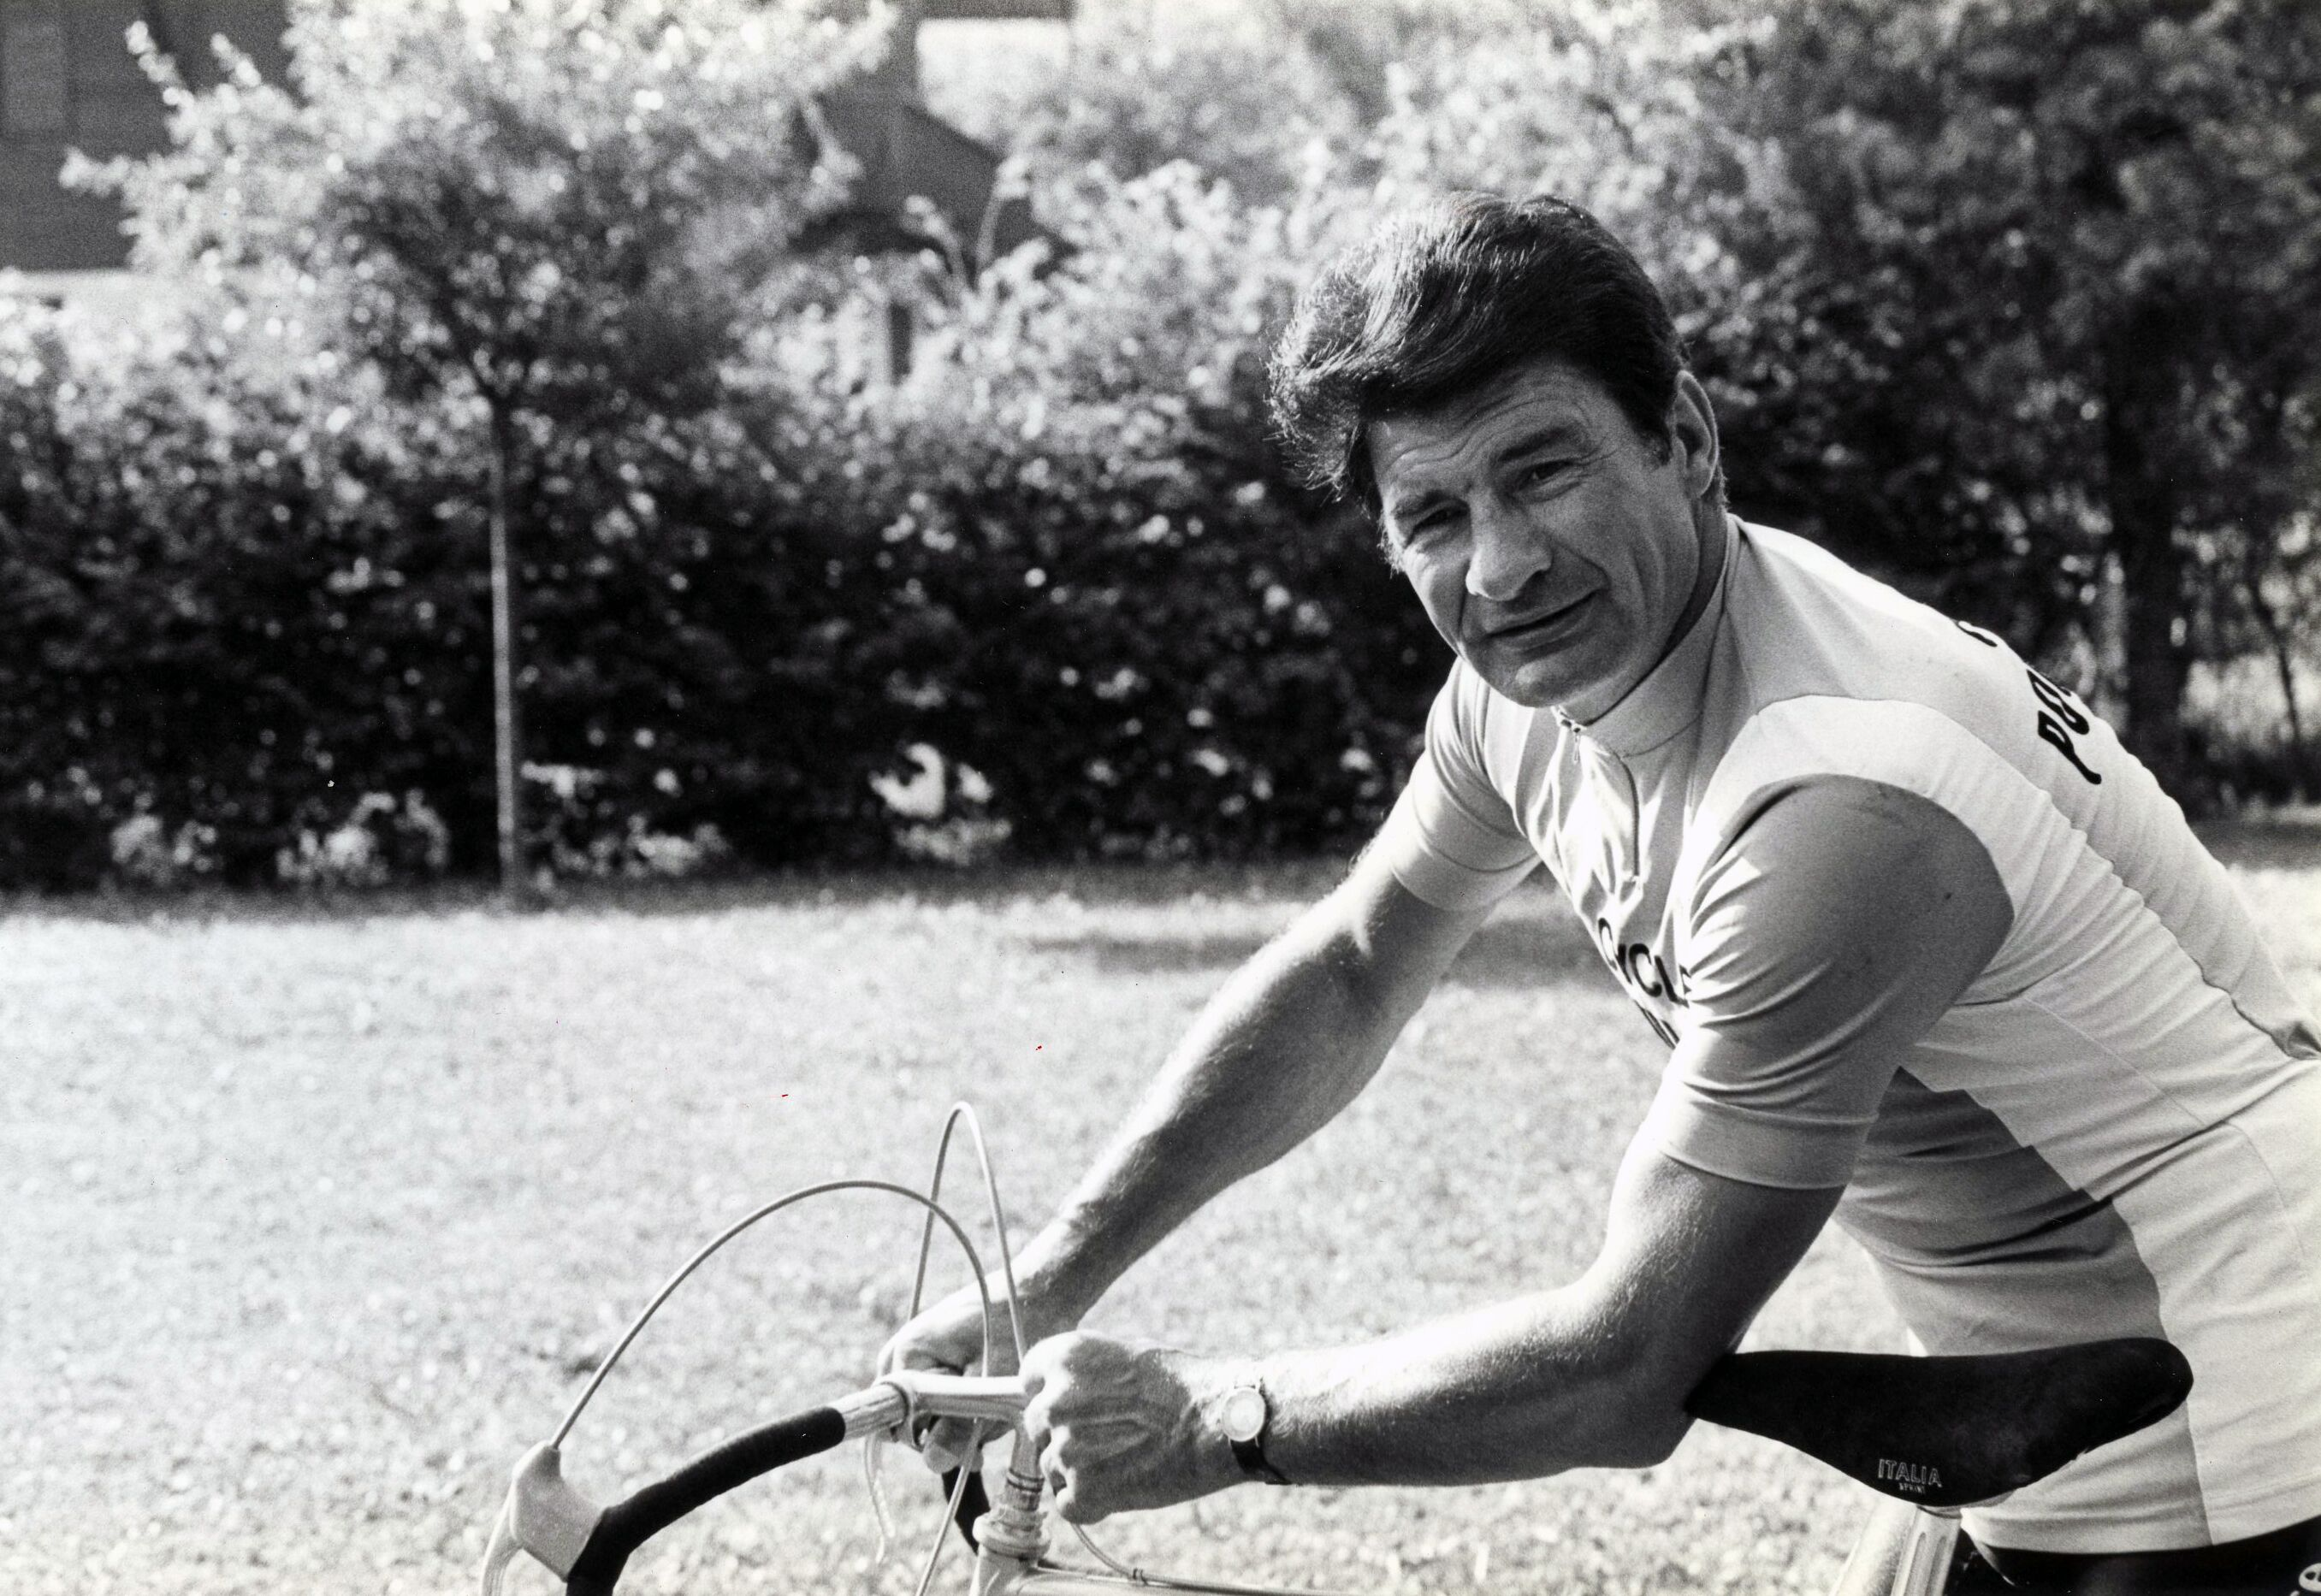 Le cycliste Français Raymond Poulidor teste un vélo et la distance entre le guidon et la selle. France, 21/07/1982. (Source : Getty Images)